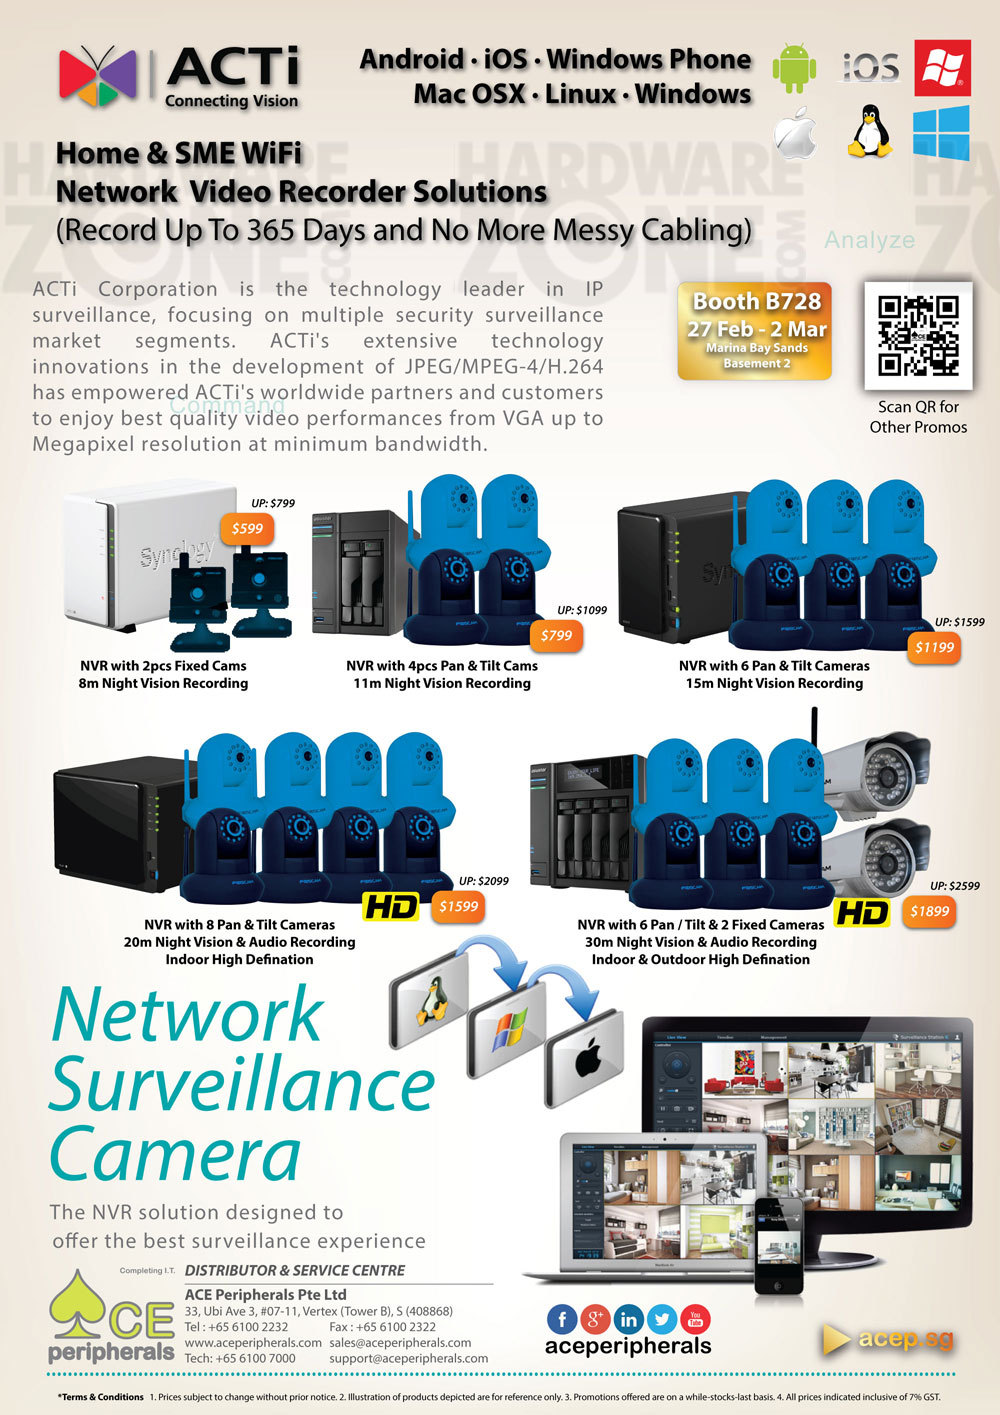 Acti network surveillance - page 1